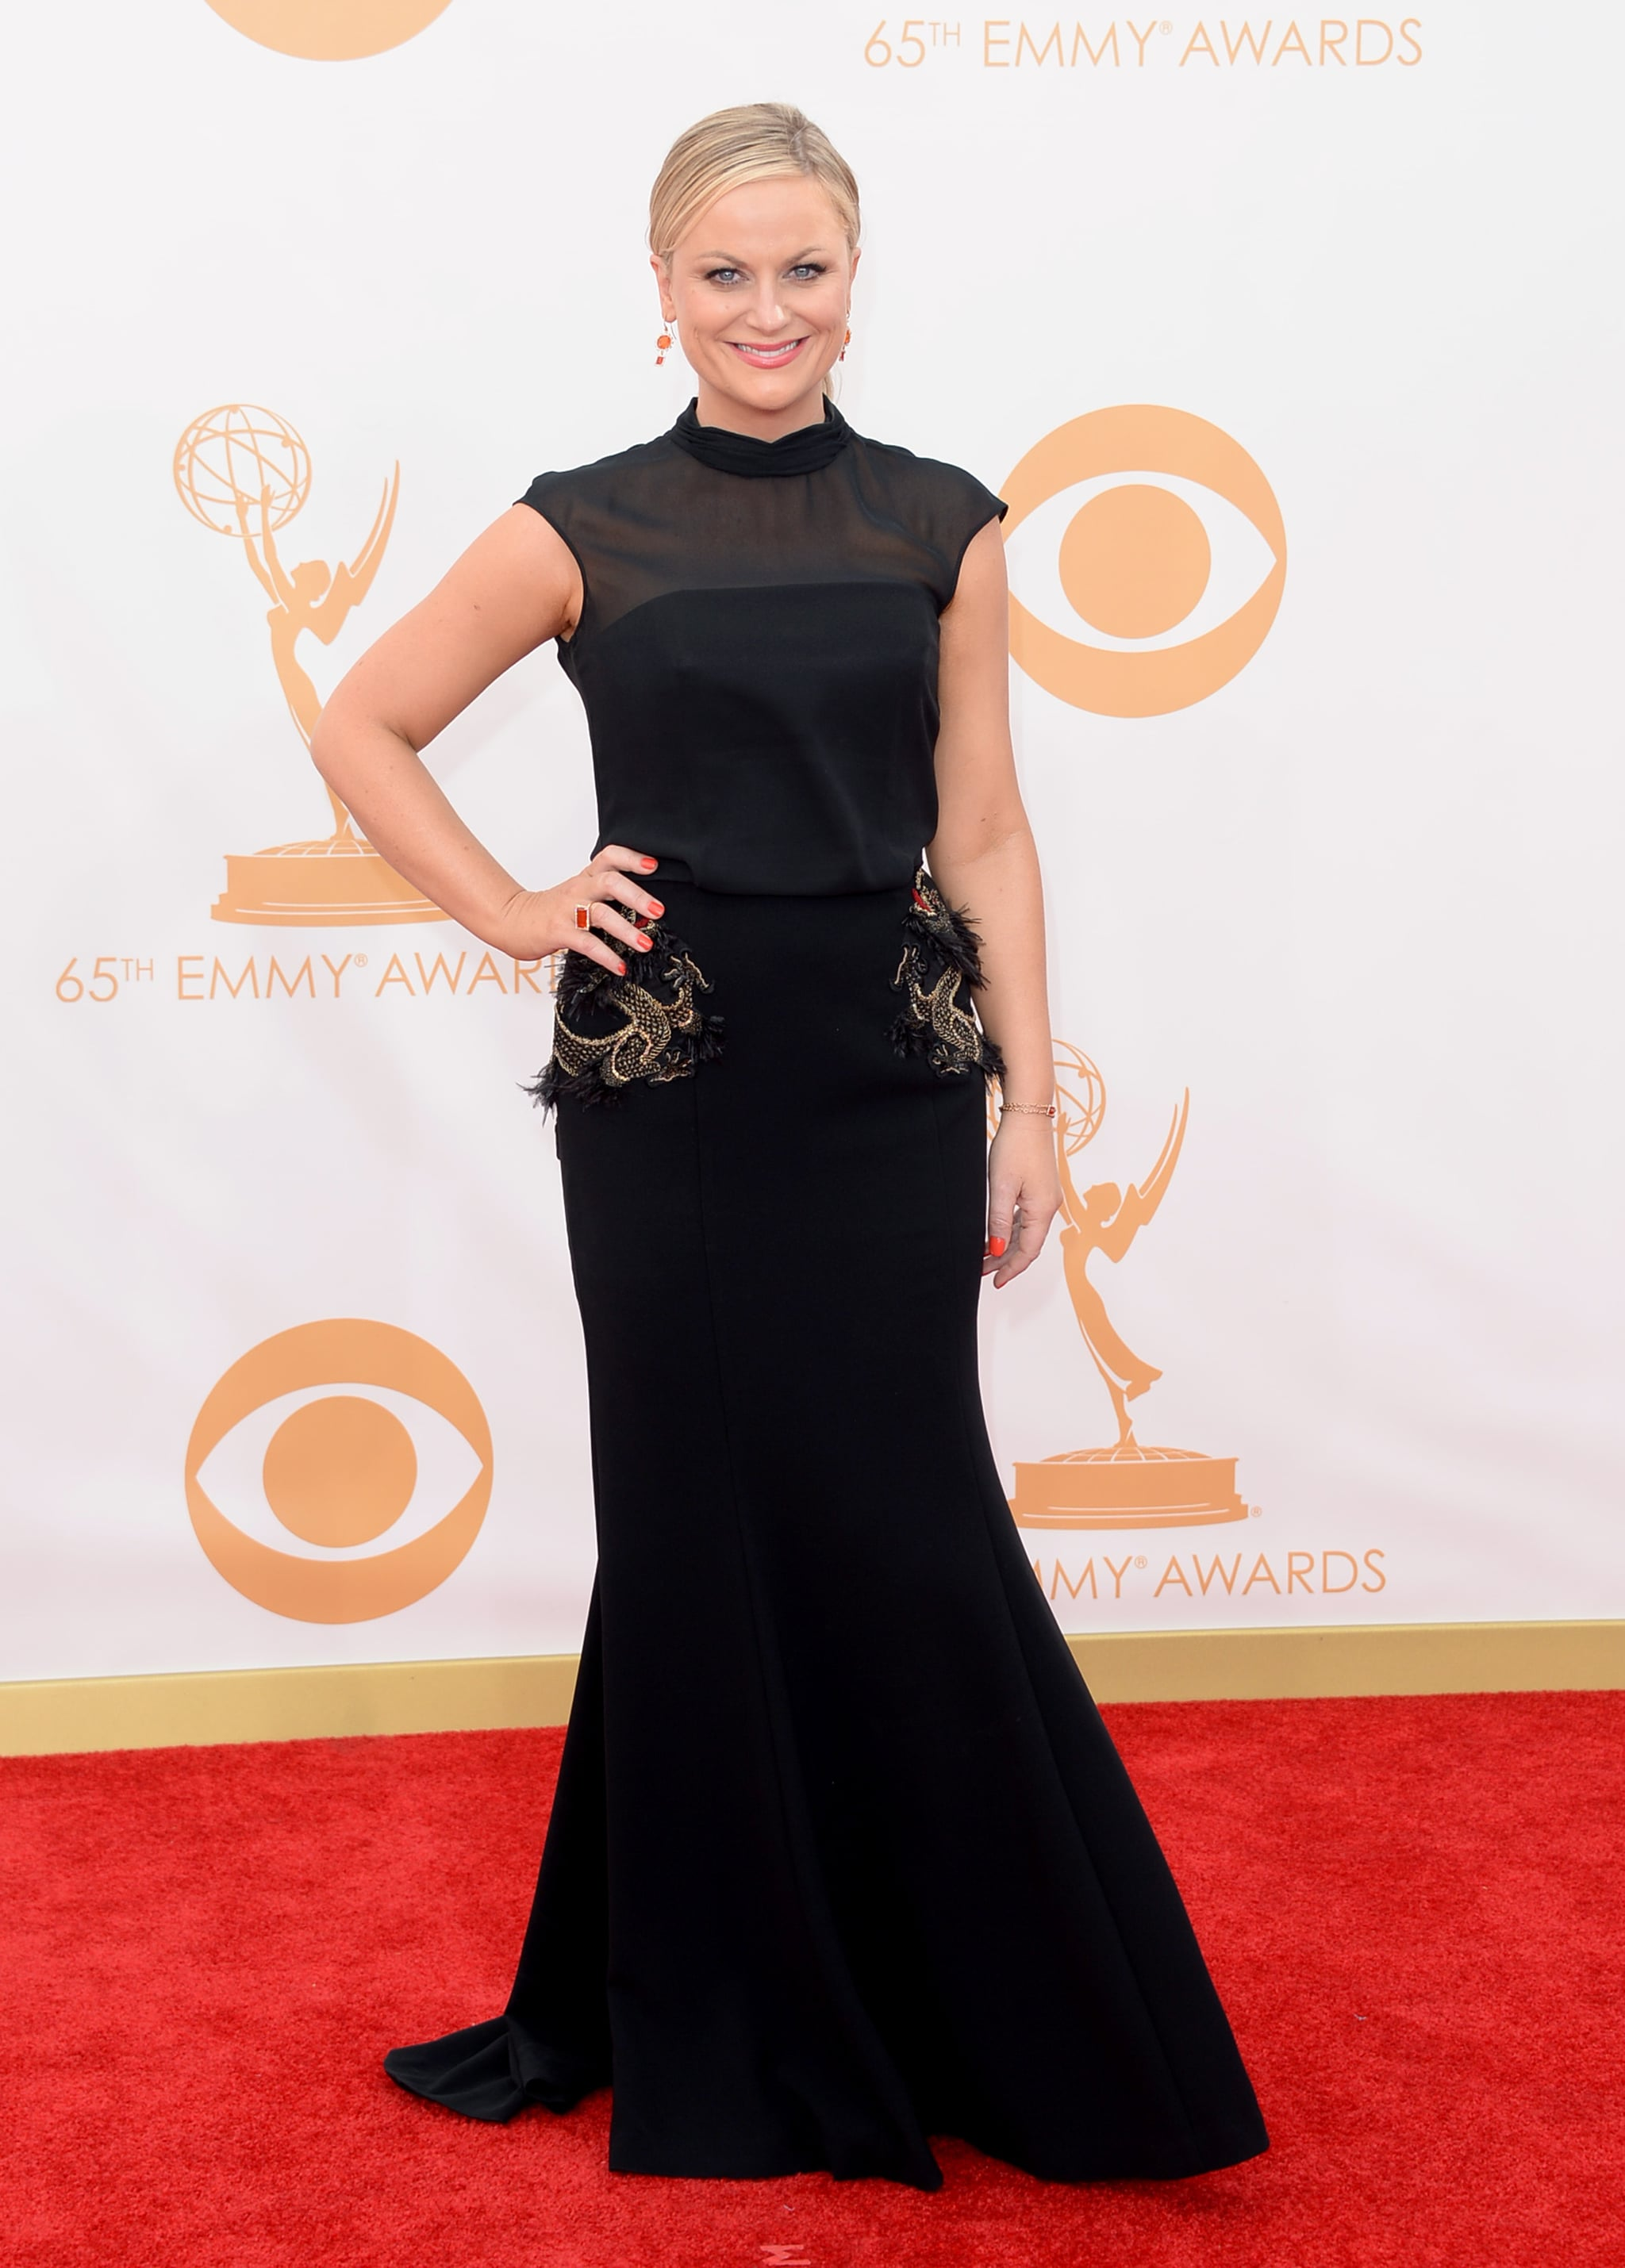 Amy Poehler's embellished-pocket Basler dress was a fancy cousin of the LBD — those Irene Neuwirth jewels were equally glam.